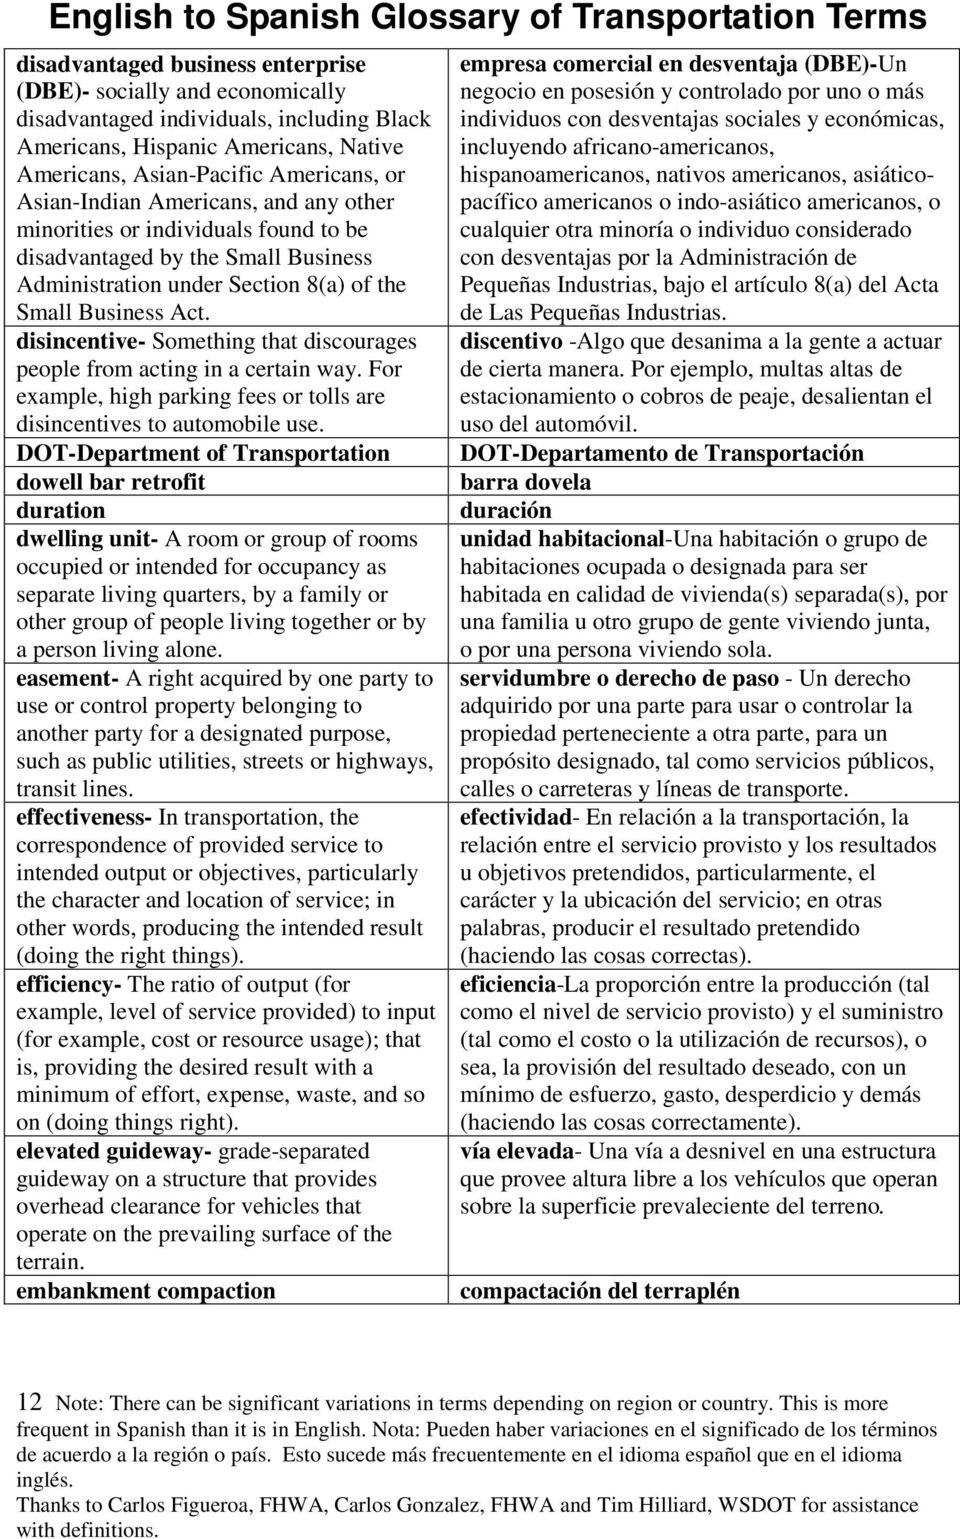 disincentive- Something that discourages people from acting in a certain way. For example, high parking fees or tolls are disincentives to automobile use.